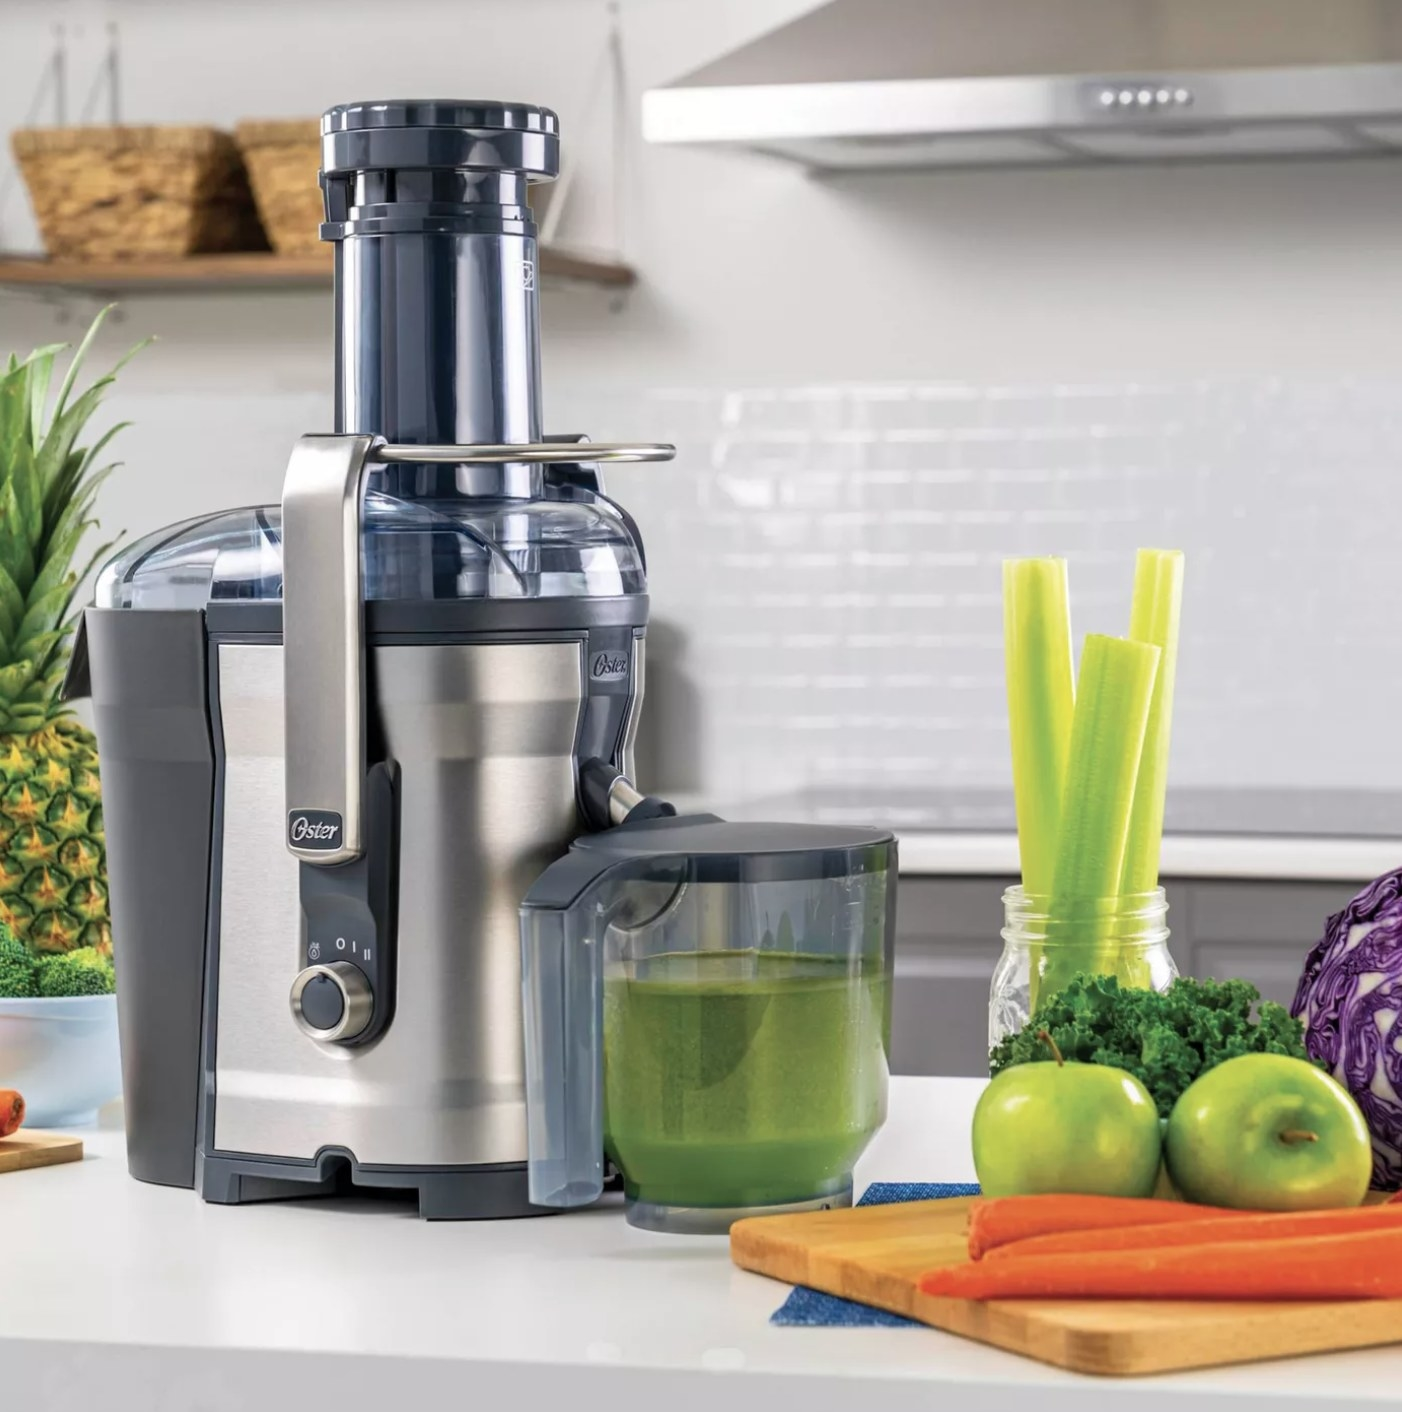 The juice extractor